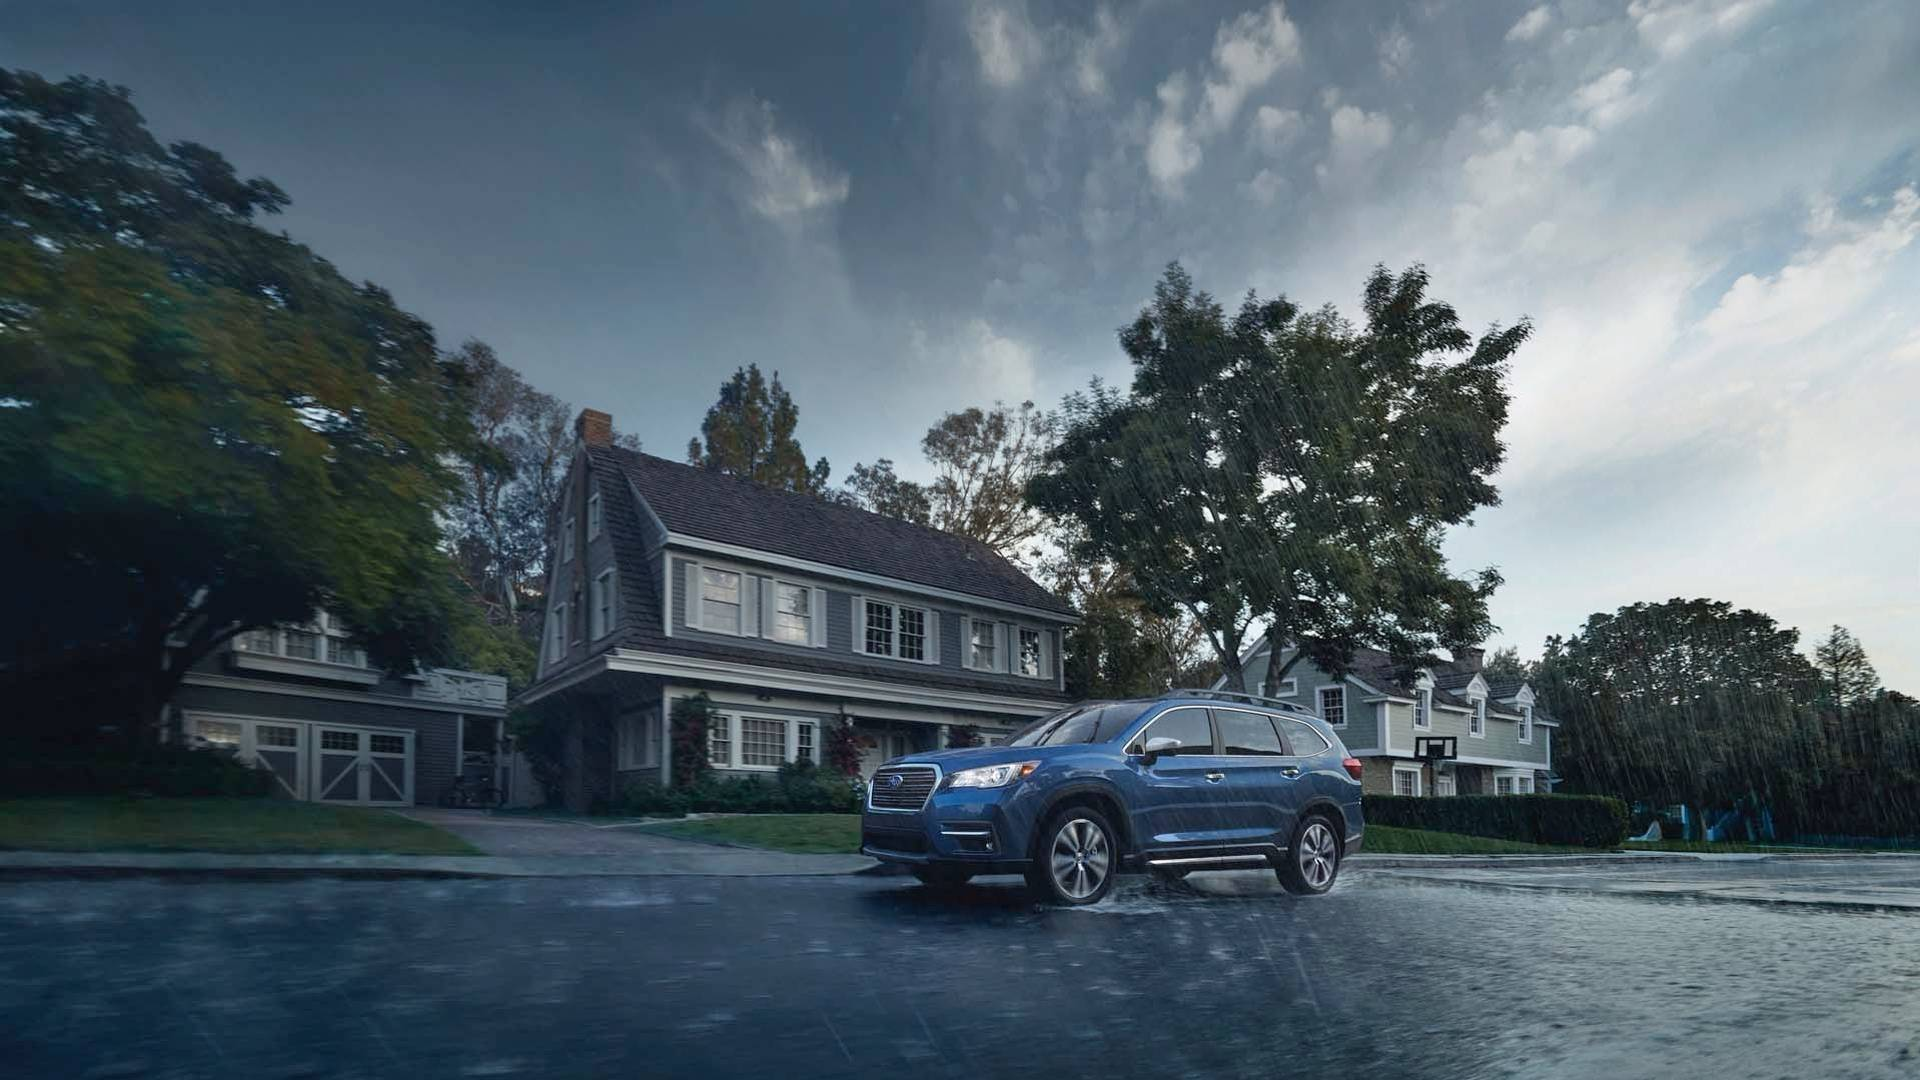 2019 Subaru Ascent Arrives With New Turbo Engine Seating For 8 2 0 Boxer Diagram